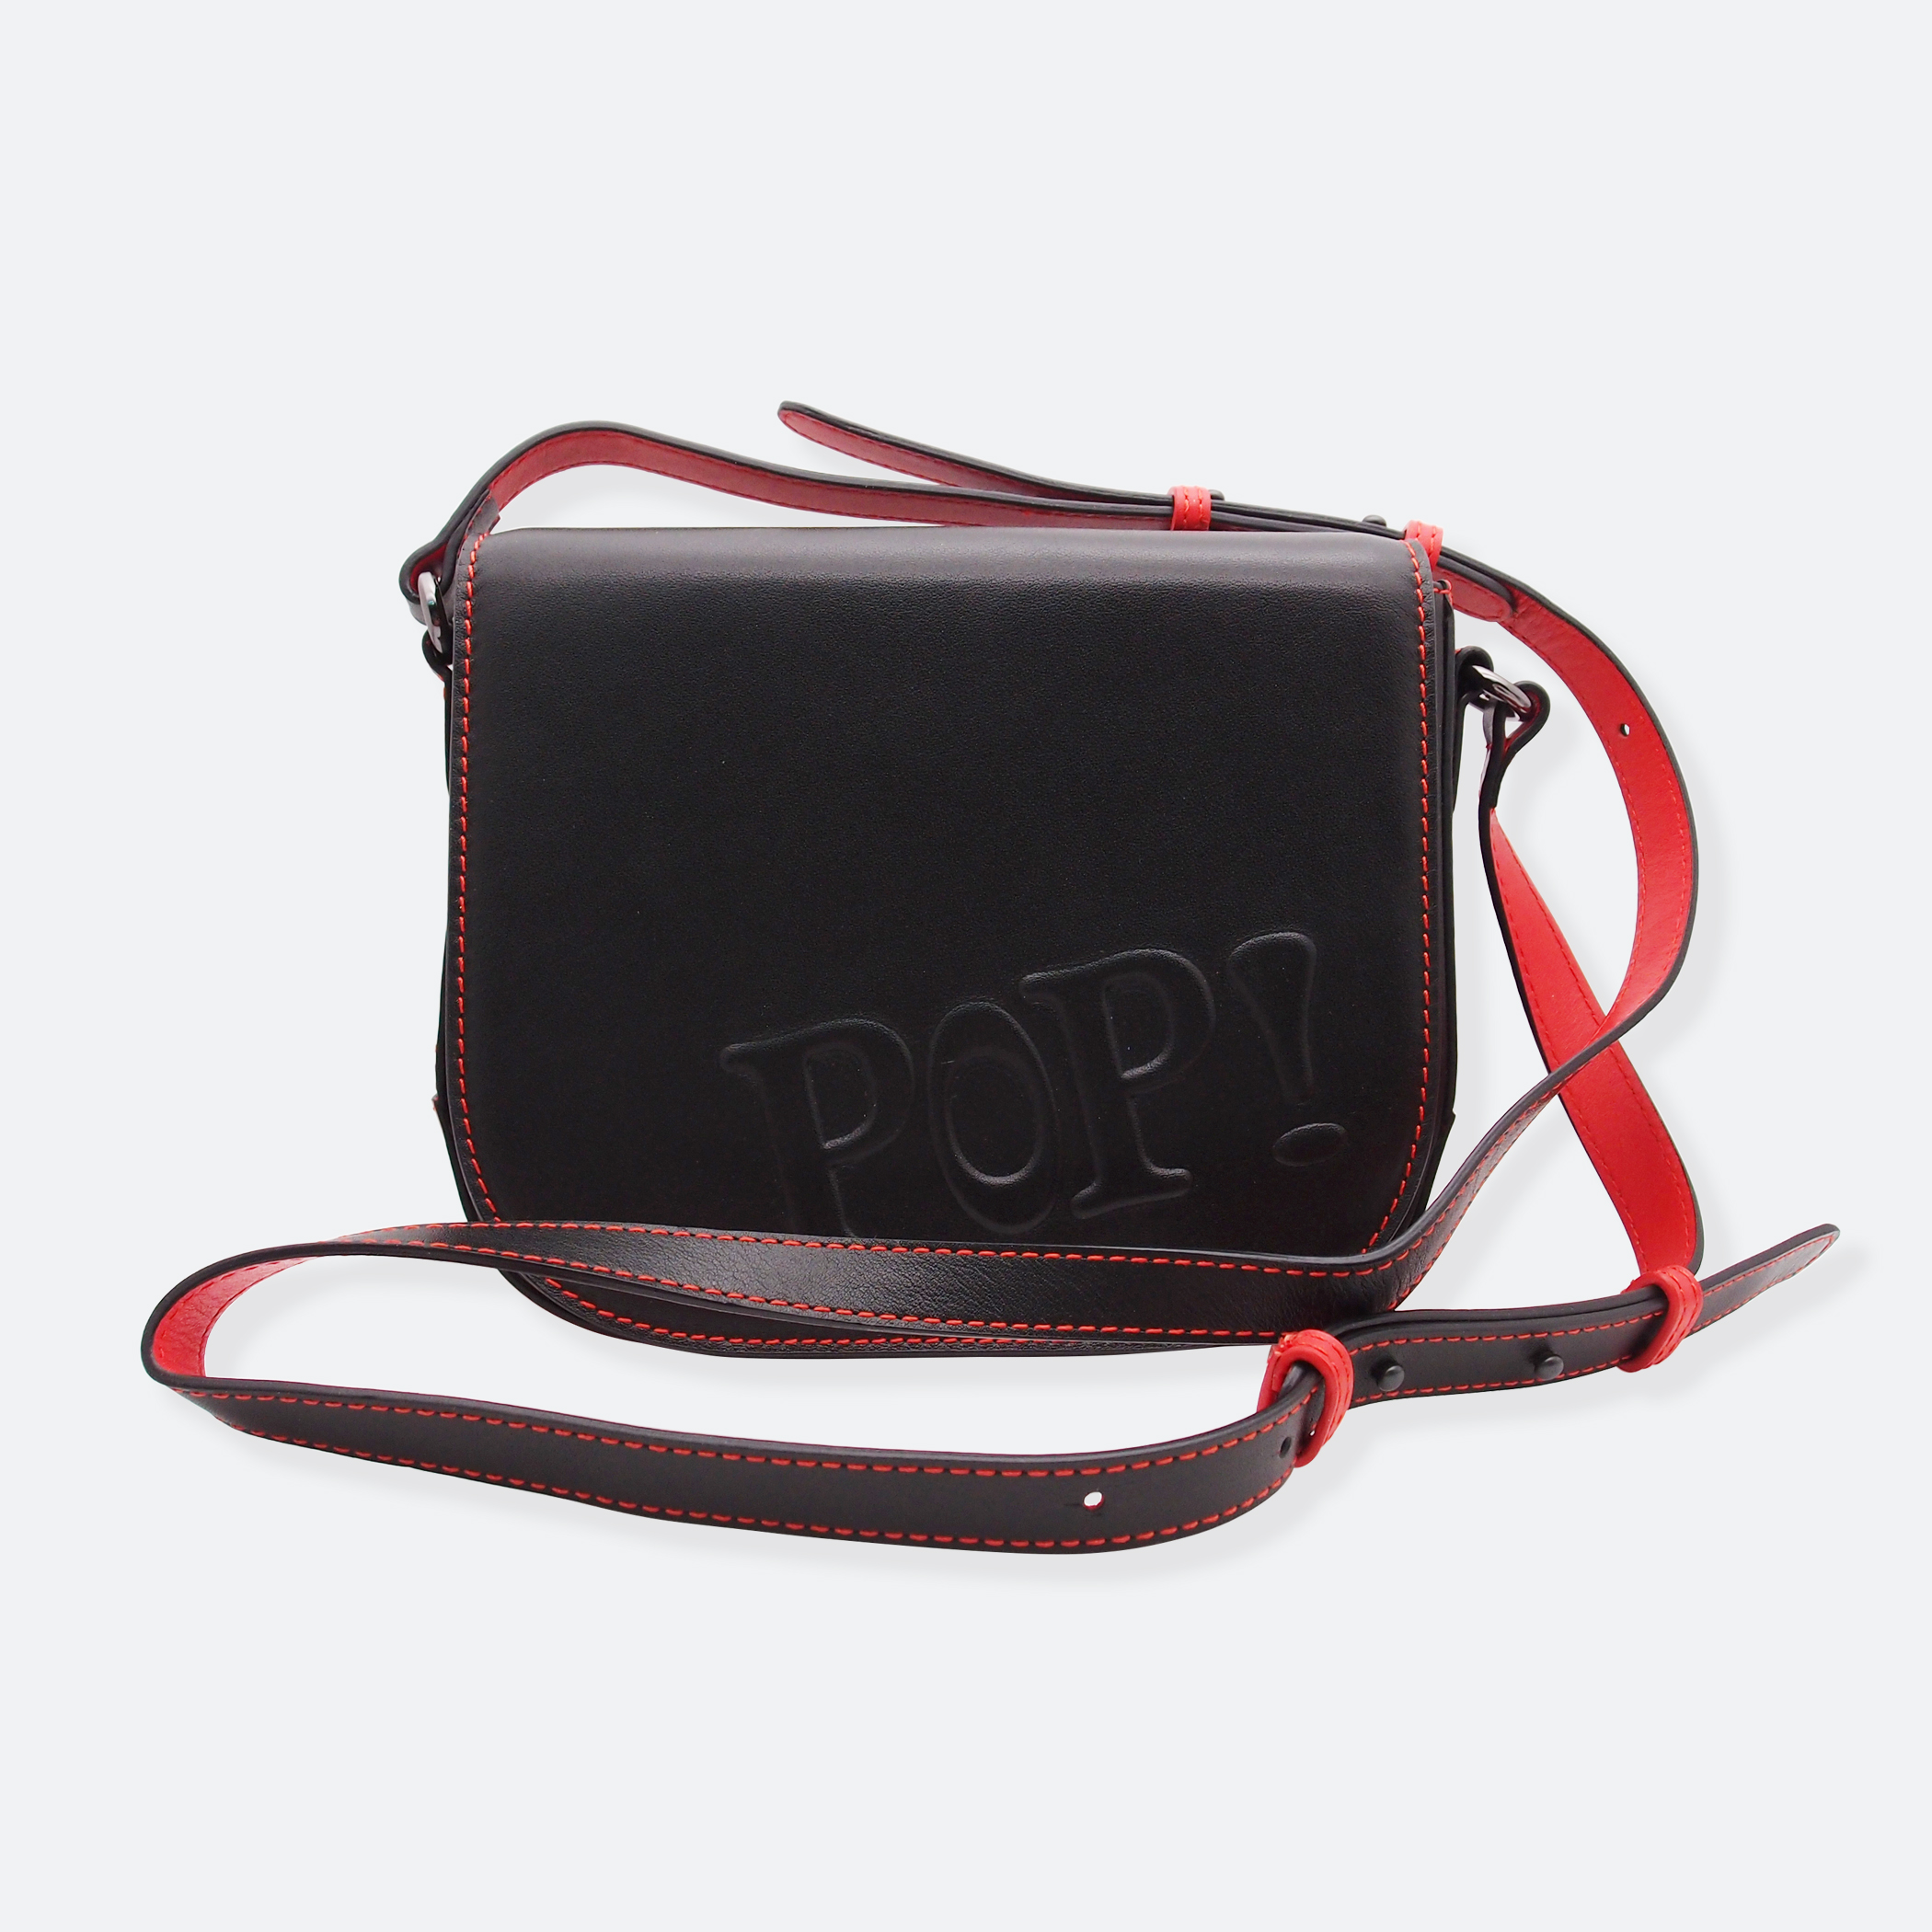 OhMart POP! Bag(Black-Red) 3